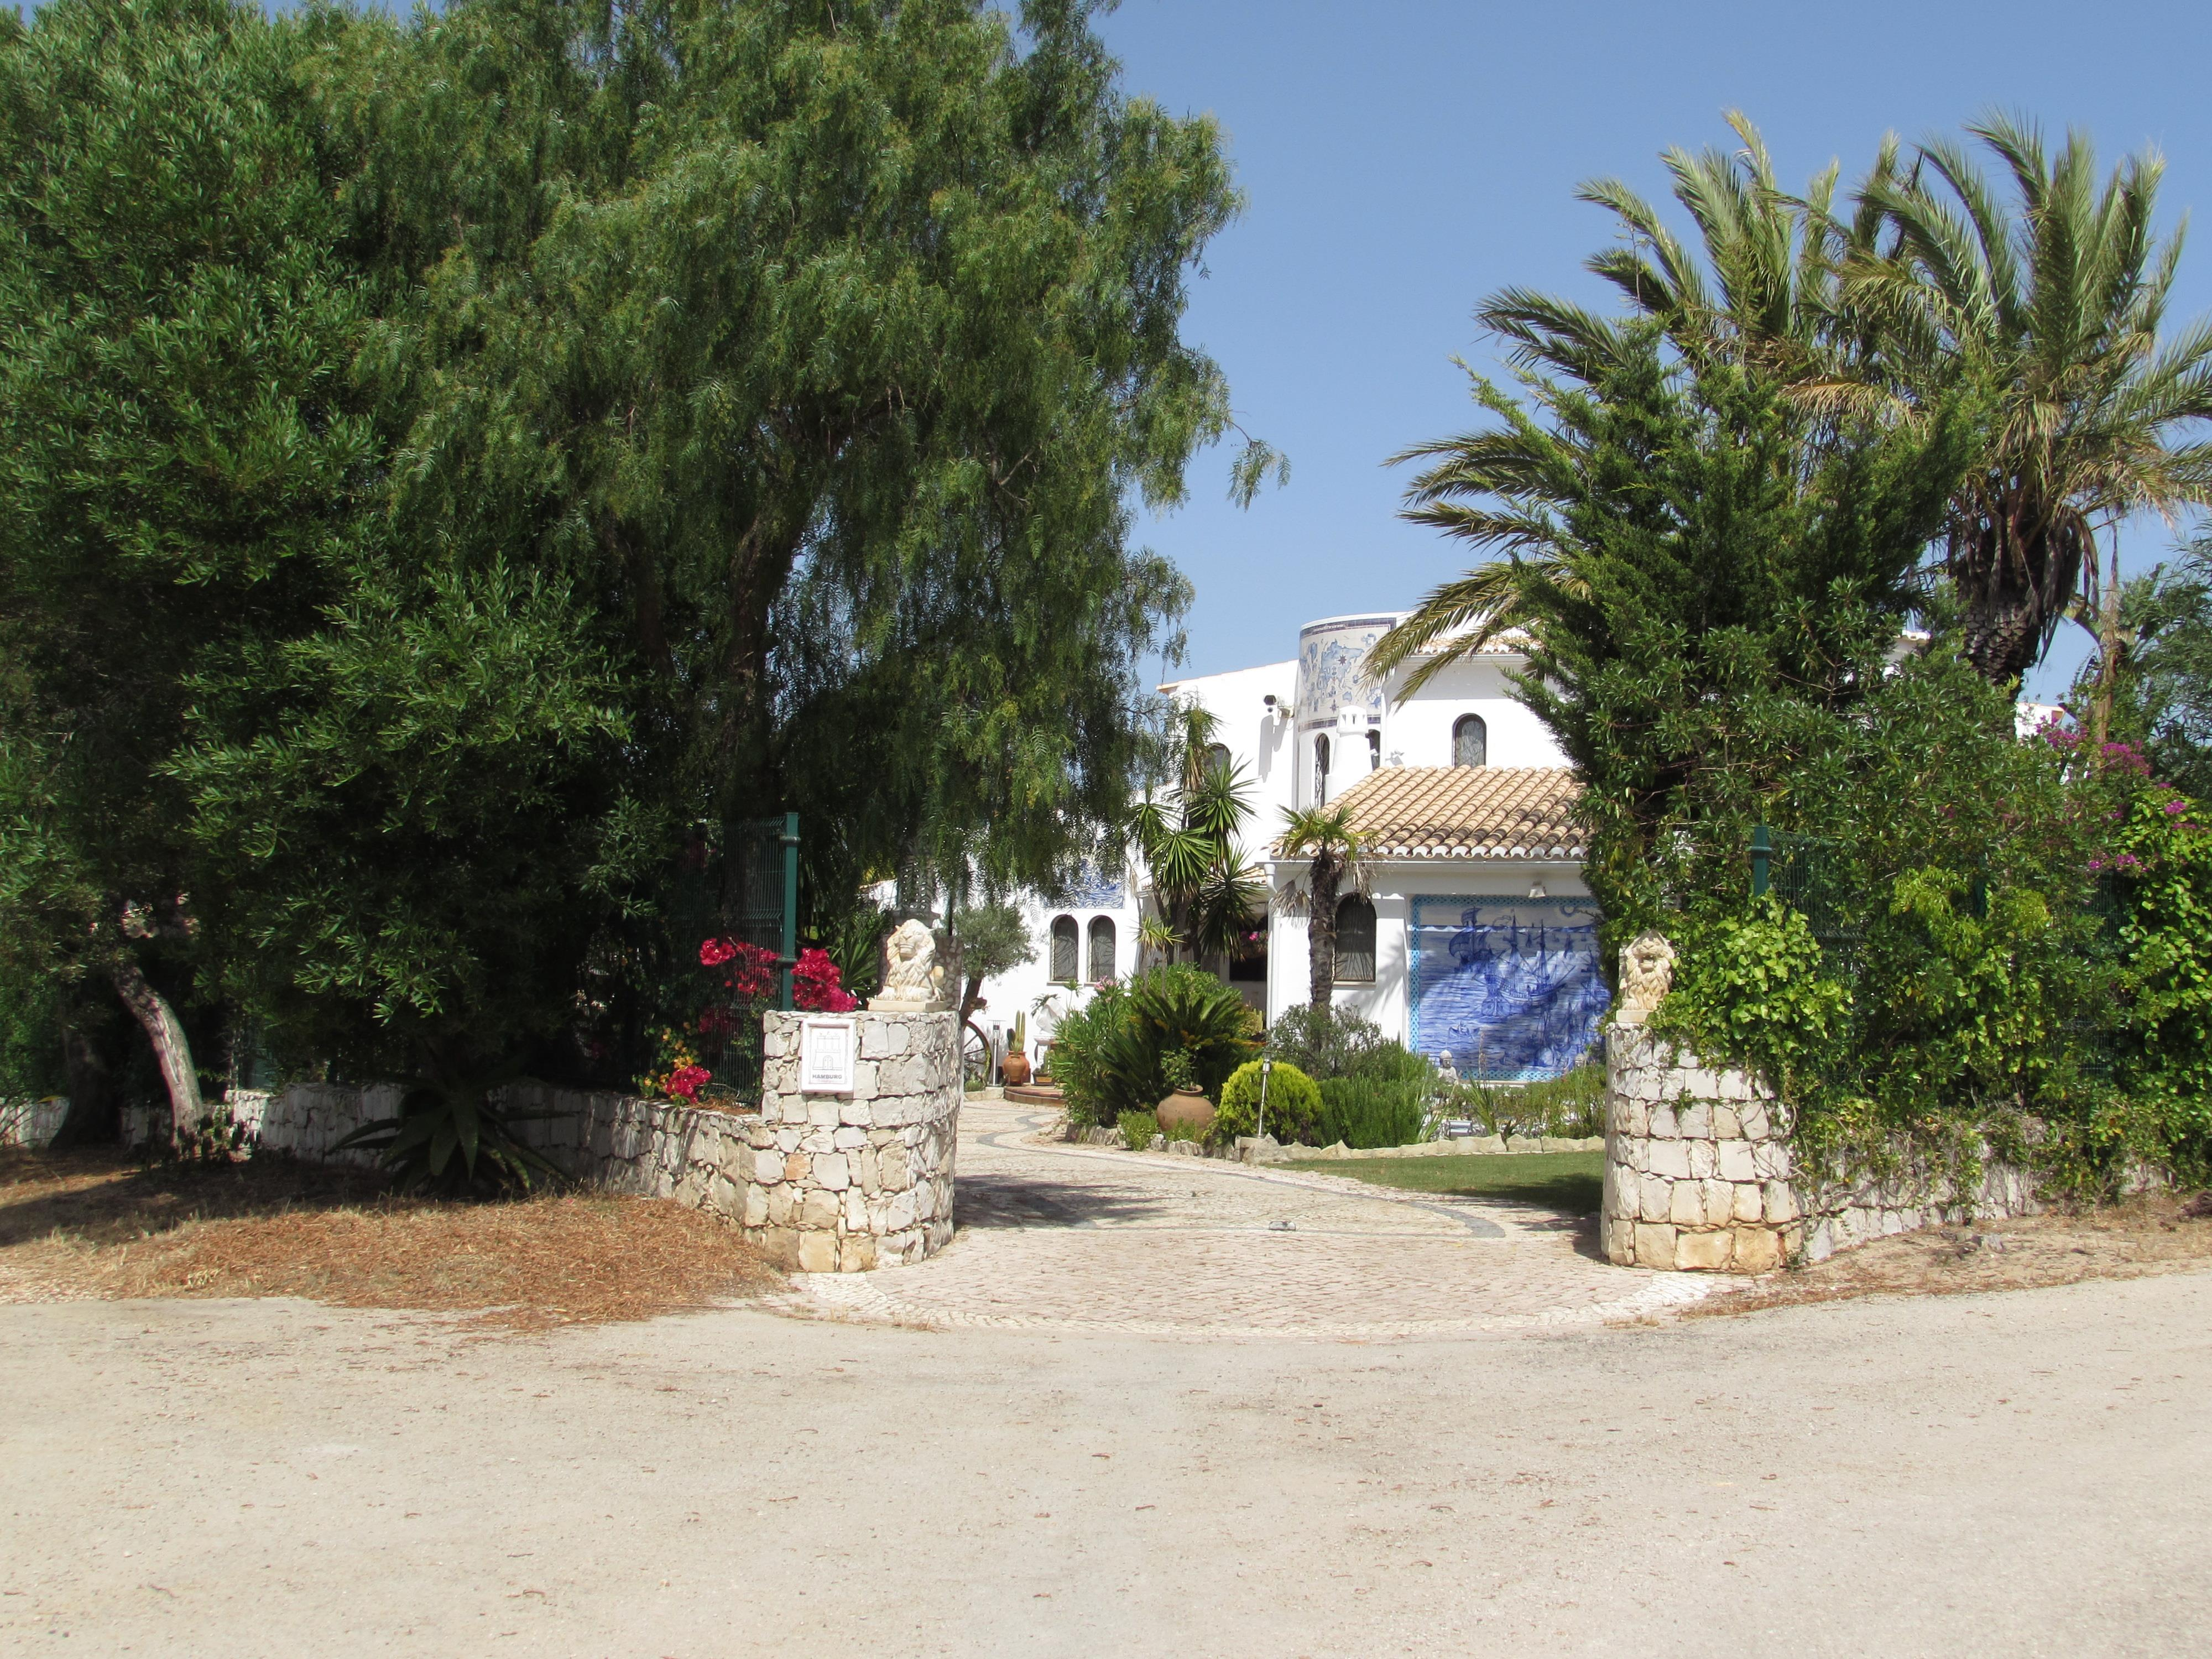 Single Family Home for Sale at Detached house, 3 bedrooms, for Sale Other Portugal, Other Areas In Portugal, 8400-301 Portugal